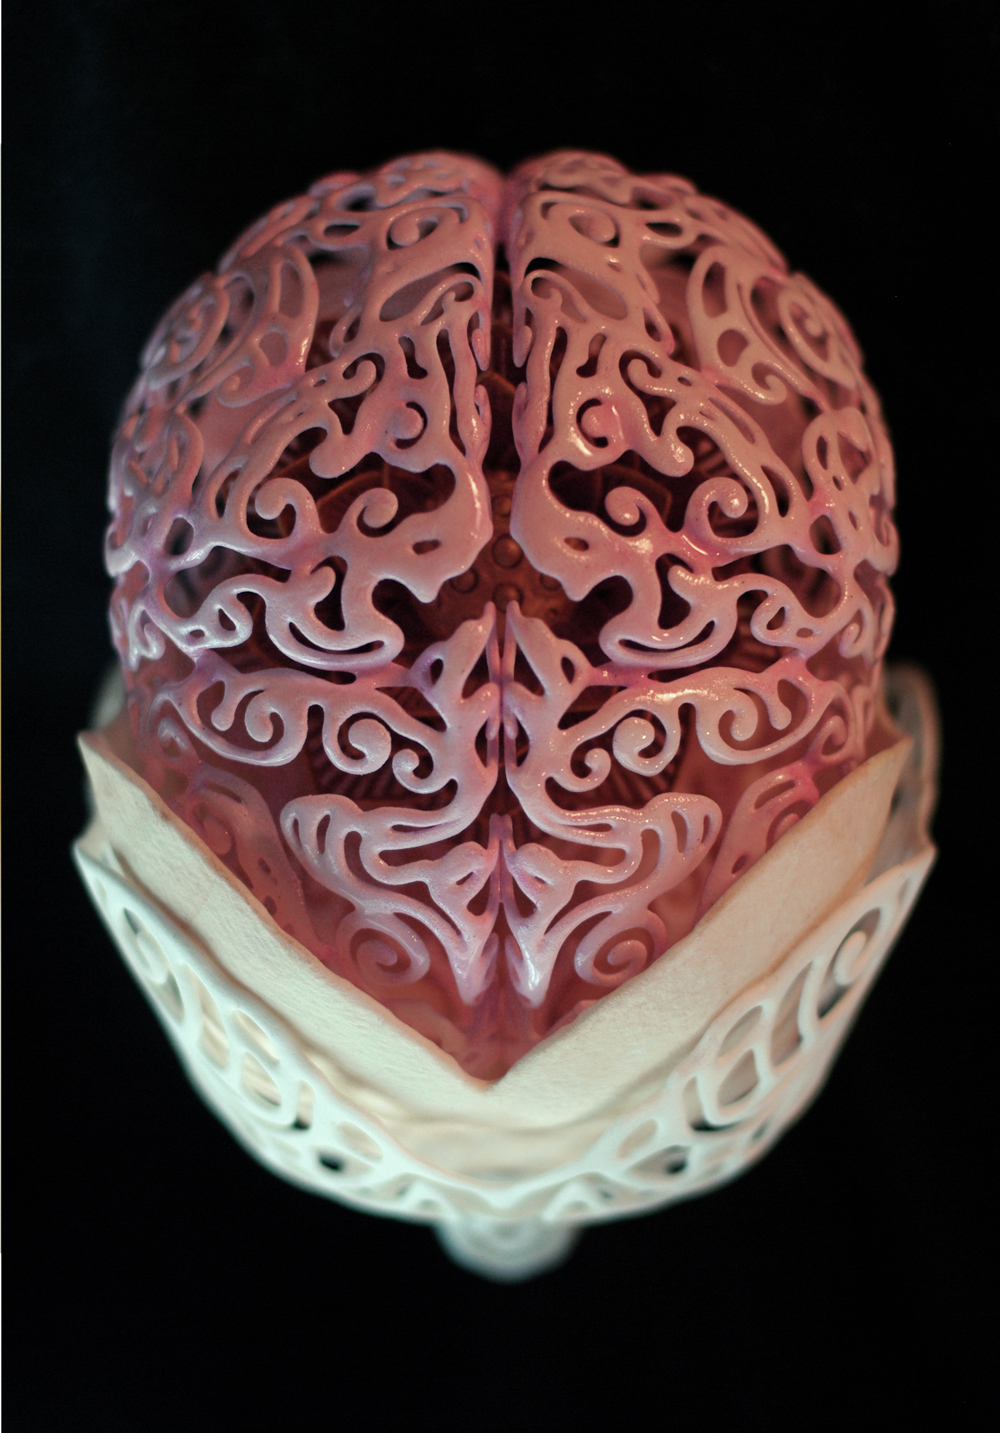 Anatomical 3D Self-Portrait by Joshua Harker